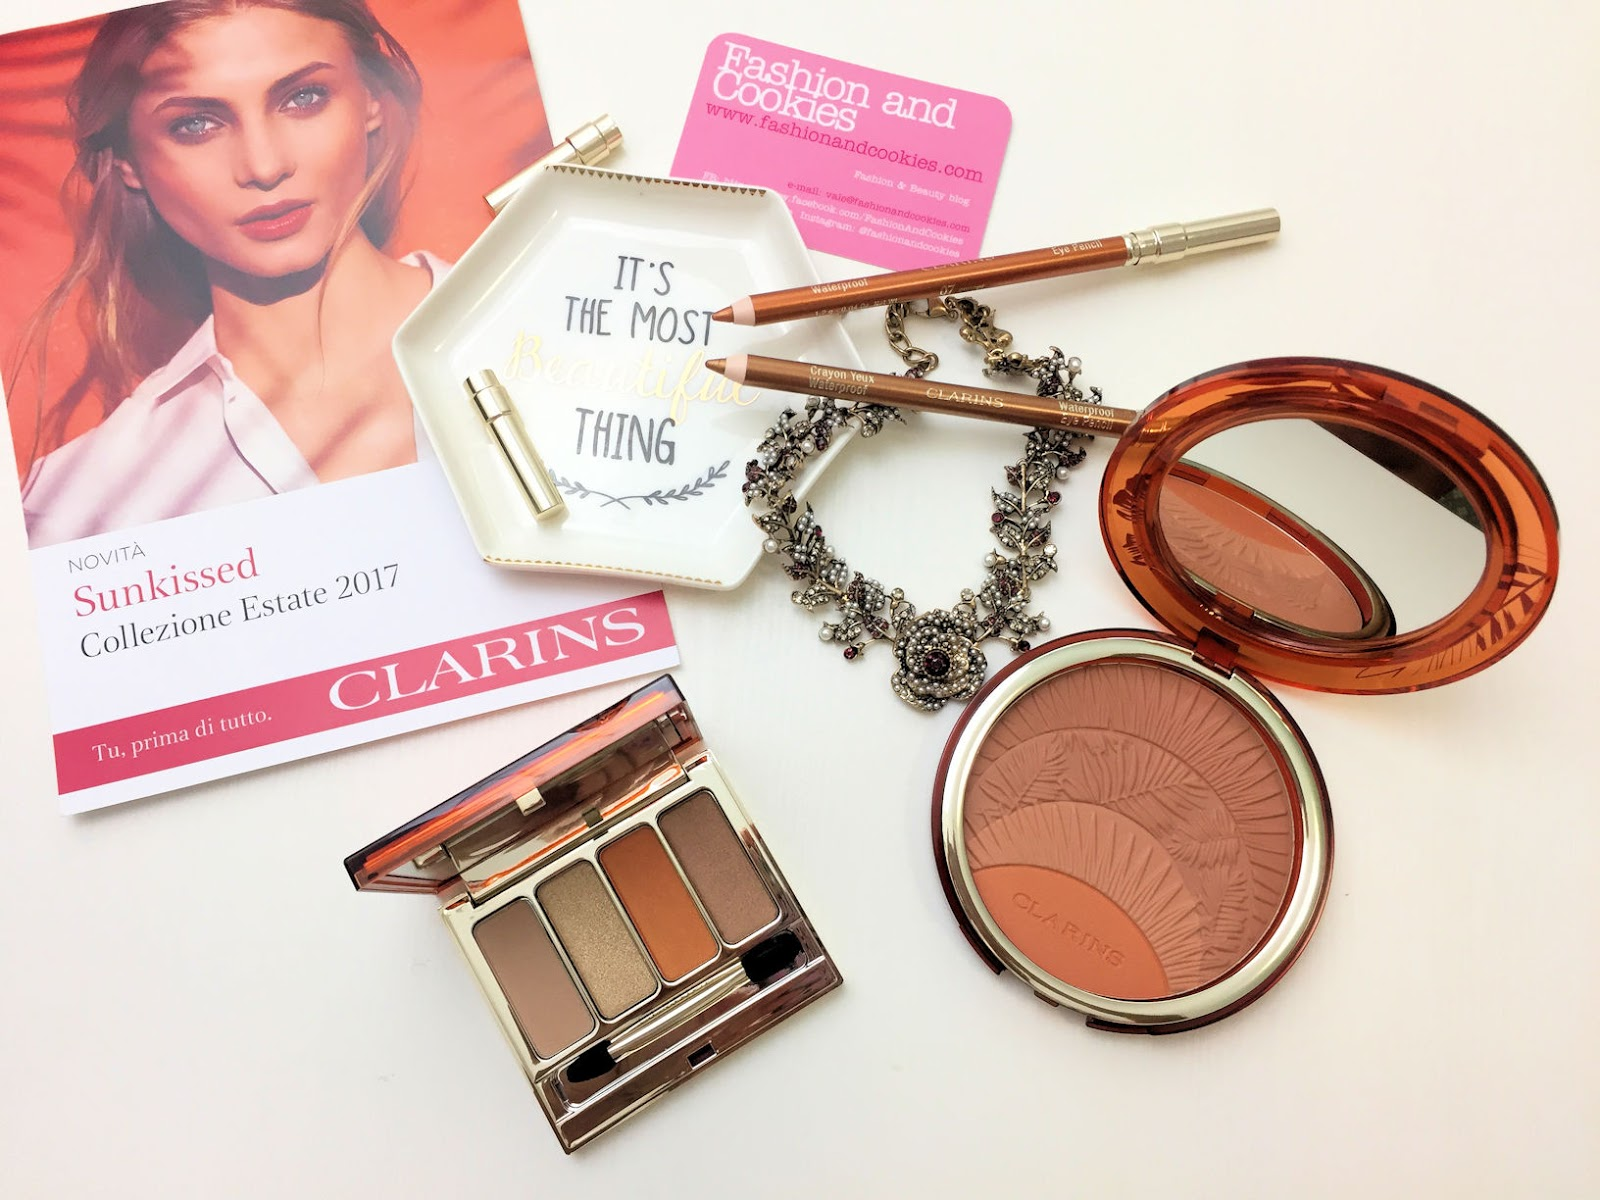 Clarins makeup collezione Sunkissed per l'estate 2017 su Fashion and Cookies beauty blog, beauty blogger